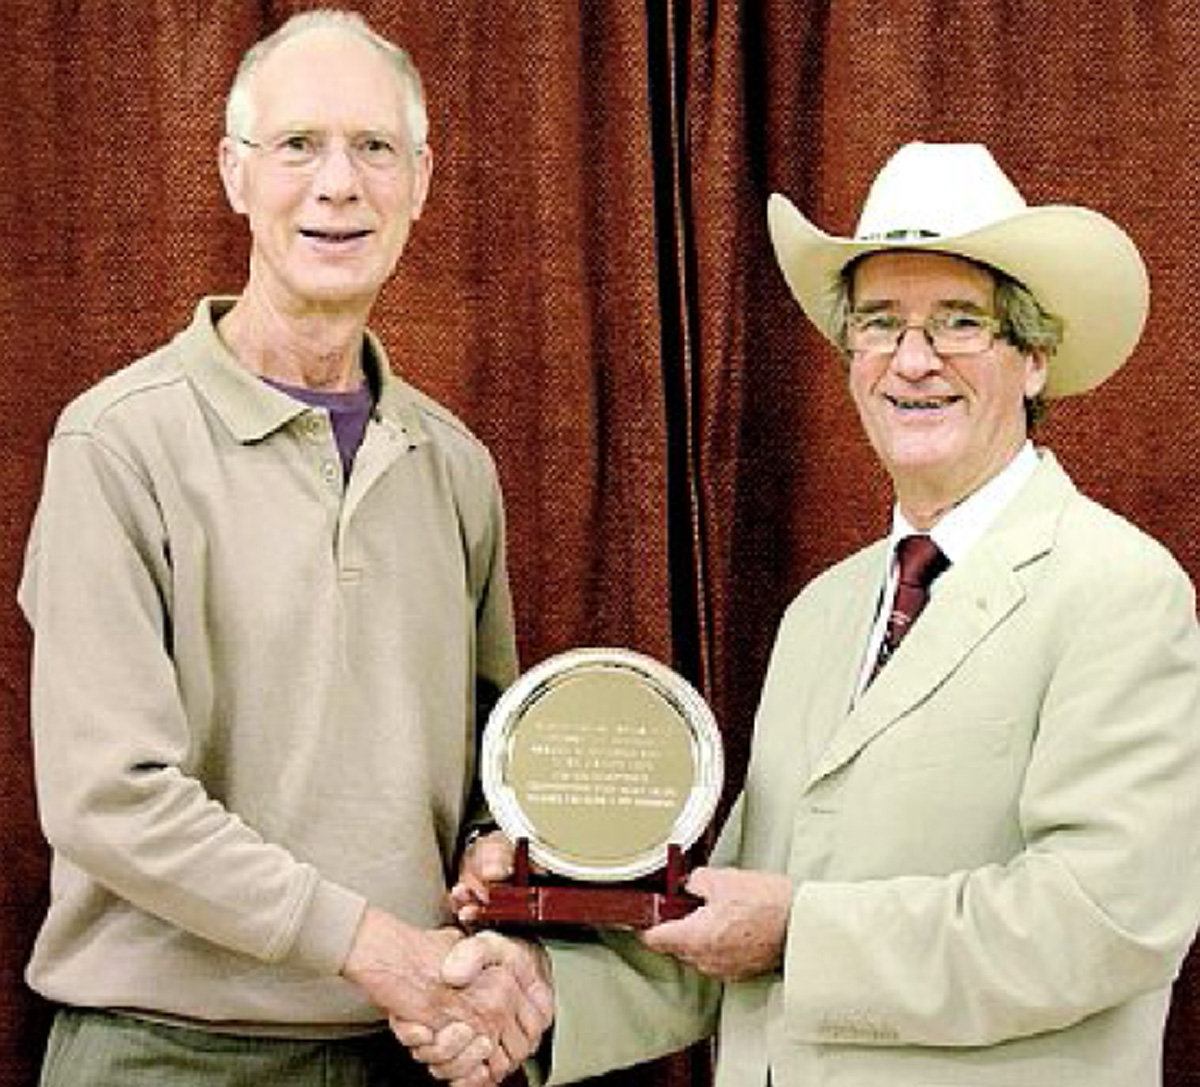 Clive Haynes receiving his award